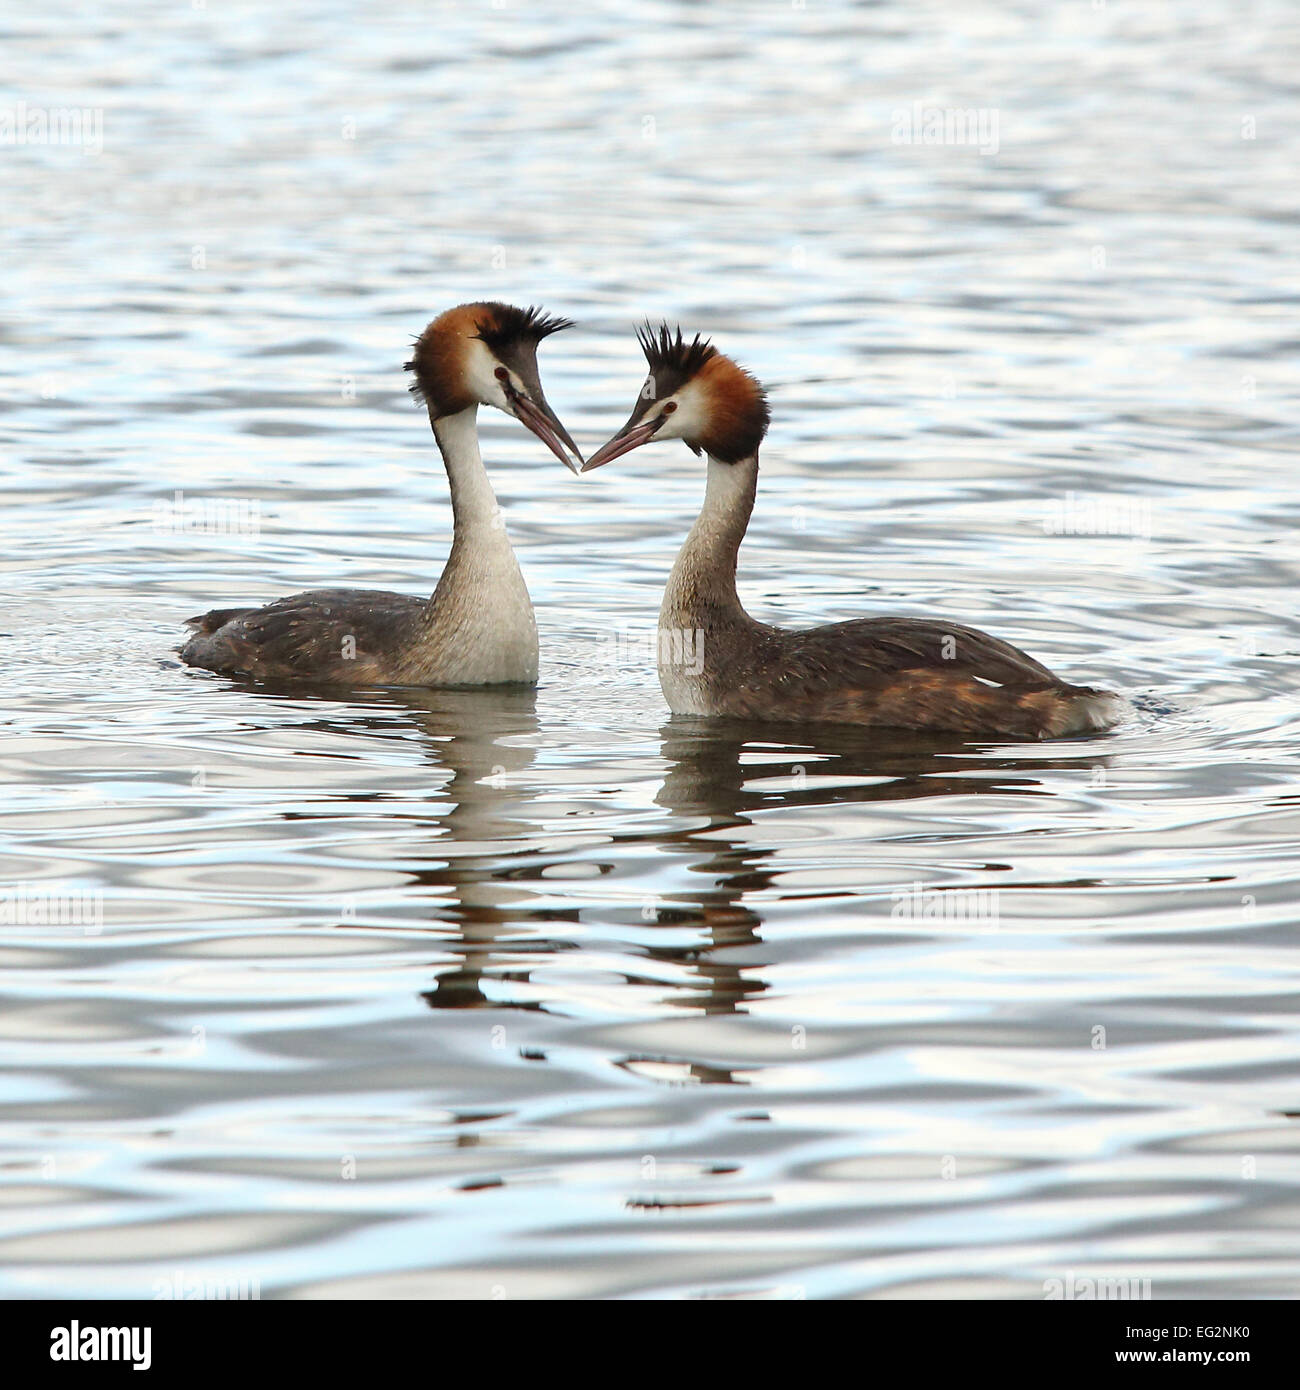 A couple of Great Crested Grebes courting in calm water Stock Photo